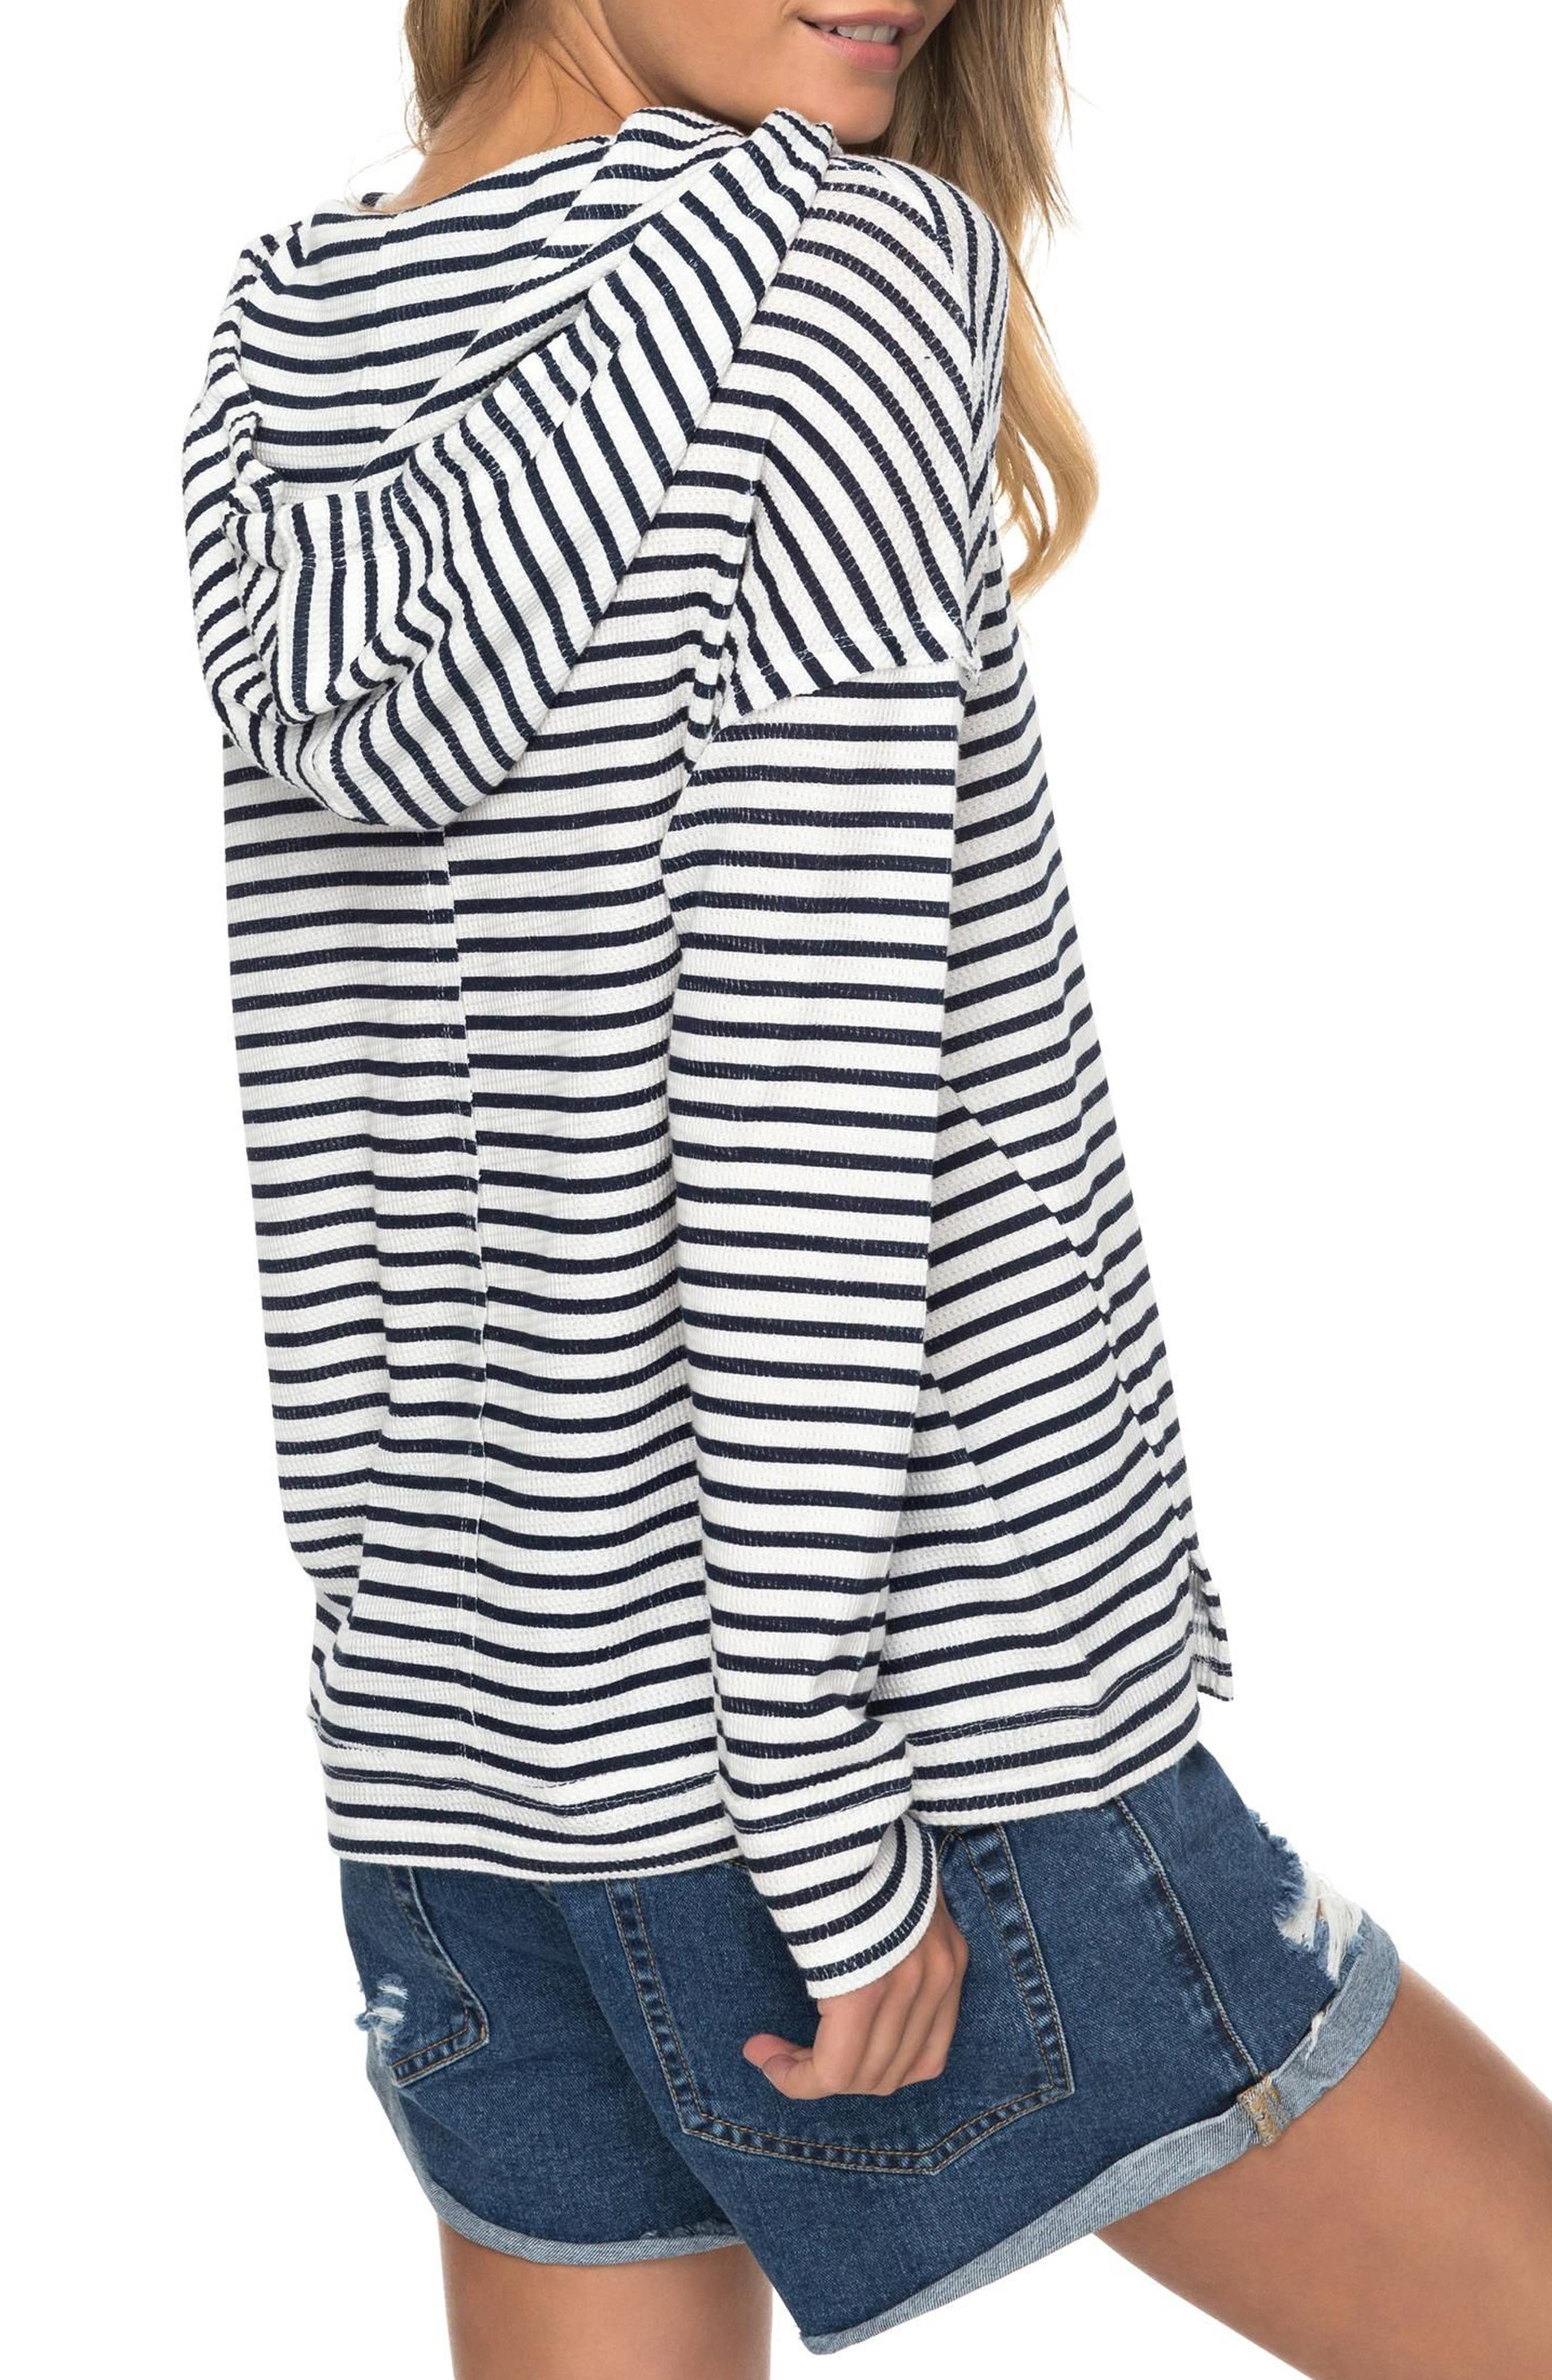 Wanted and Wild Thermal Hooded Top,                             Alternate thumbnail 3, color,                             Marshmallow Classic Stripe Vol